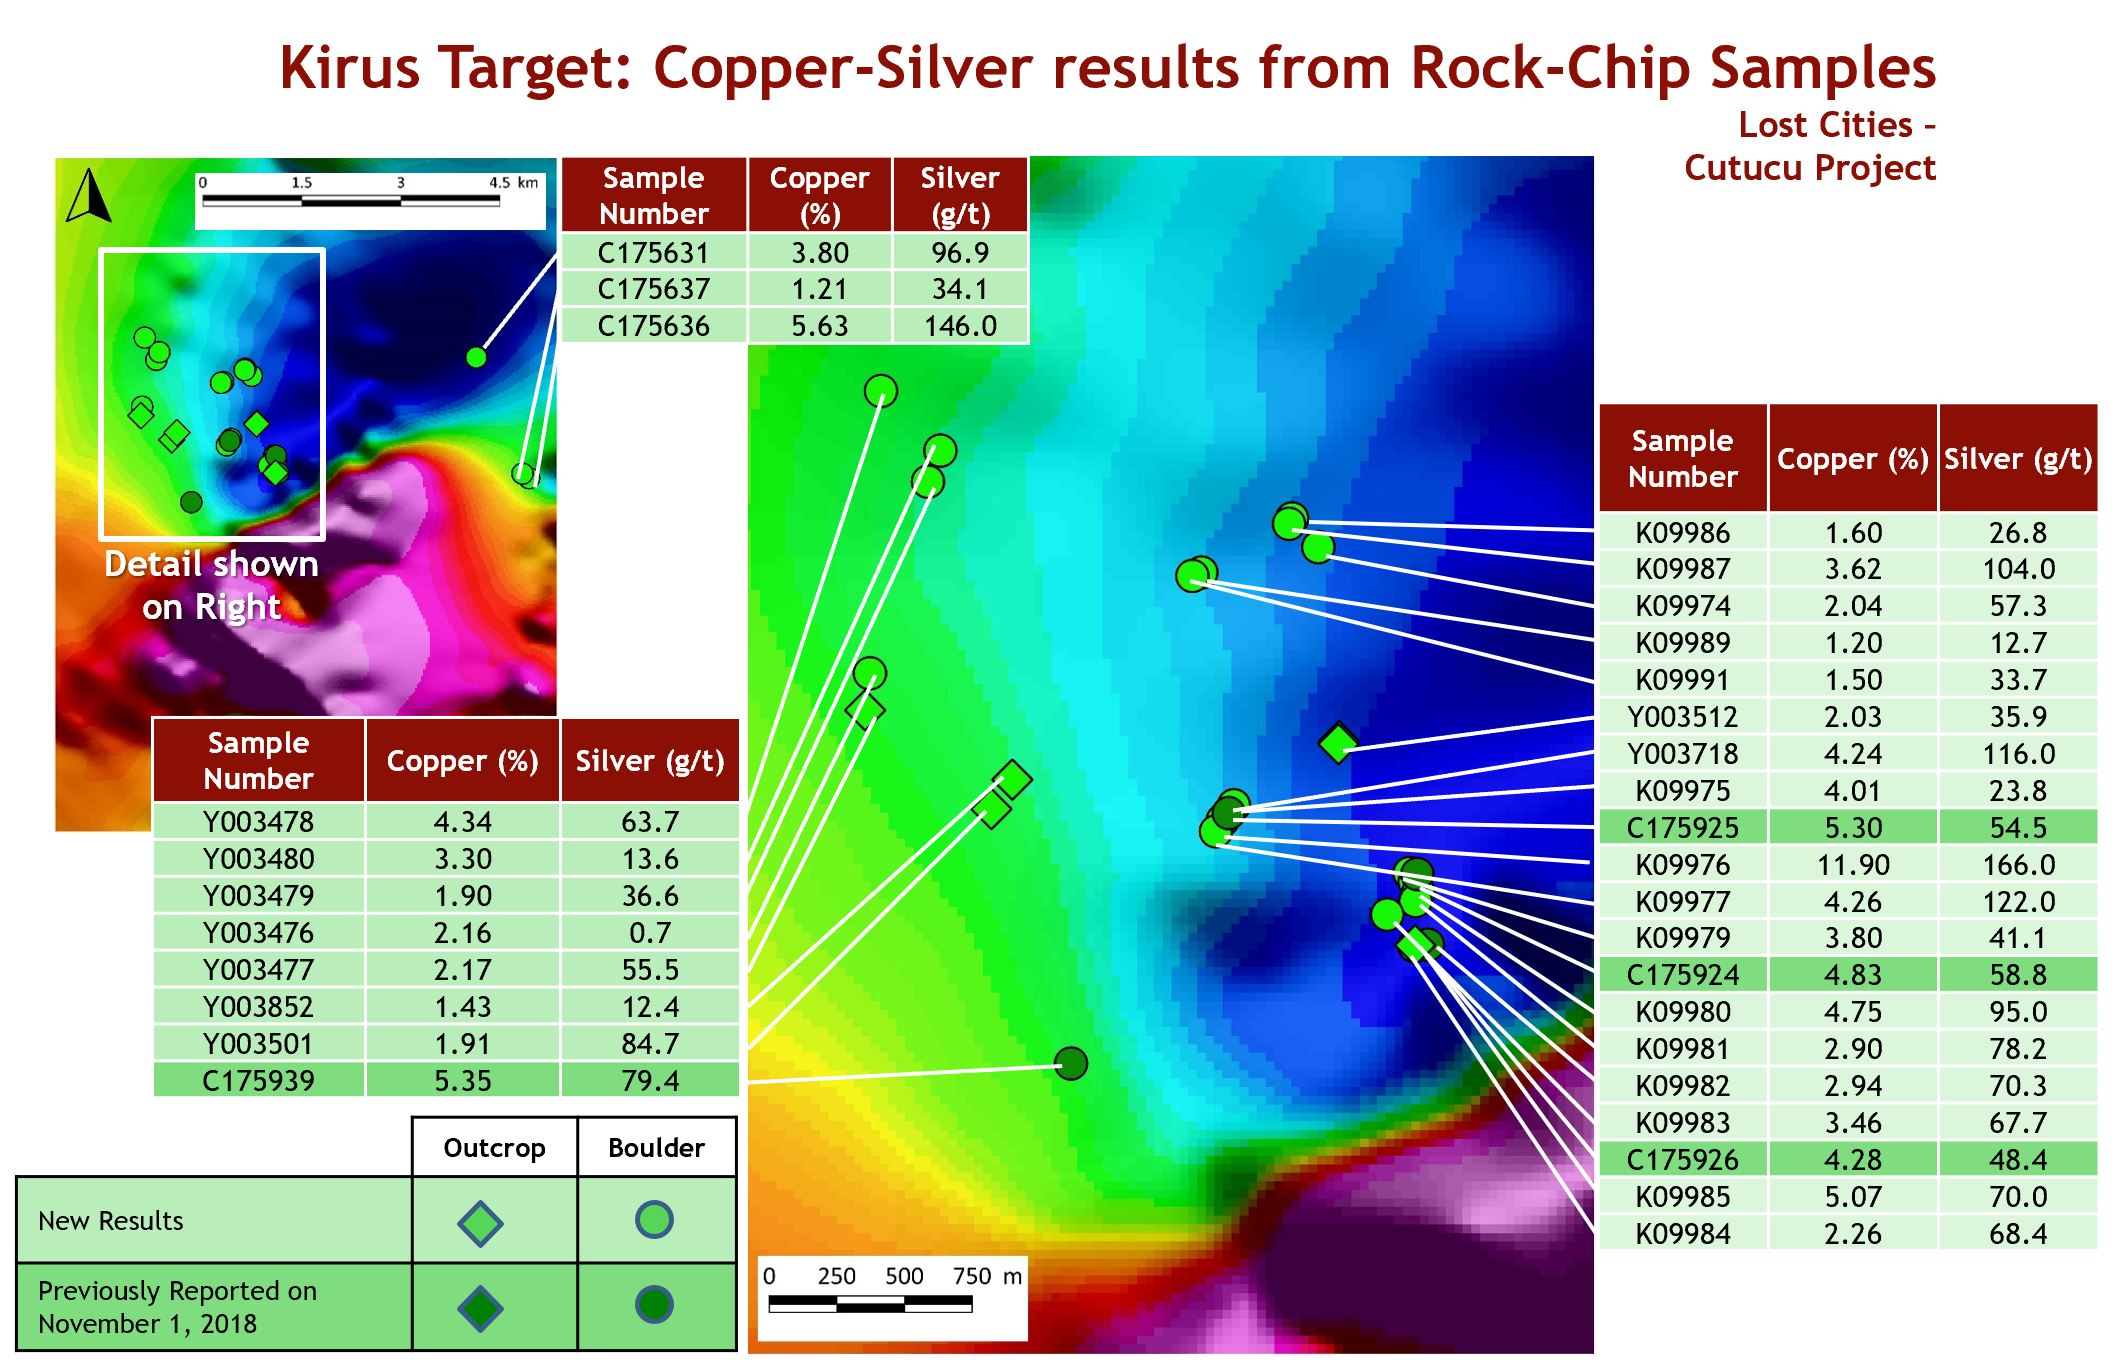 Kirus target -copper-silver results from rock chip samples